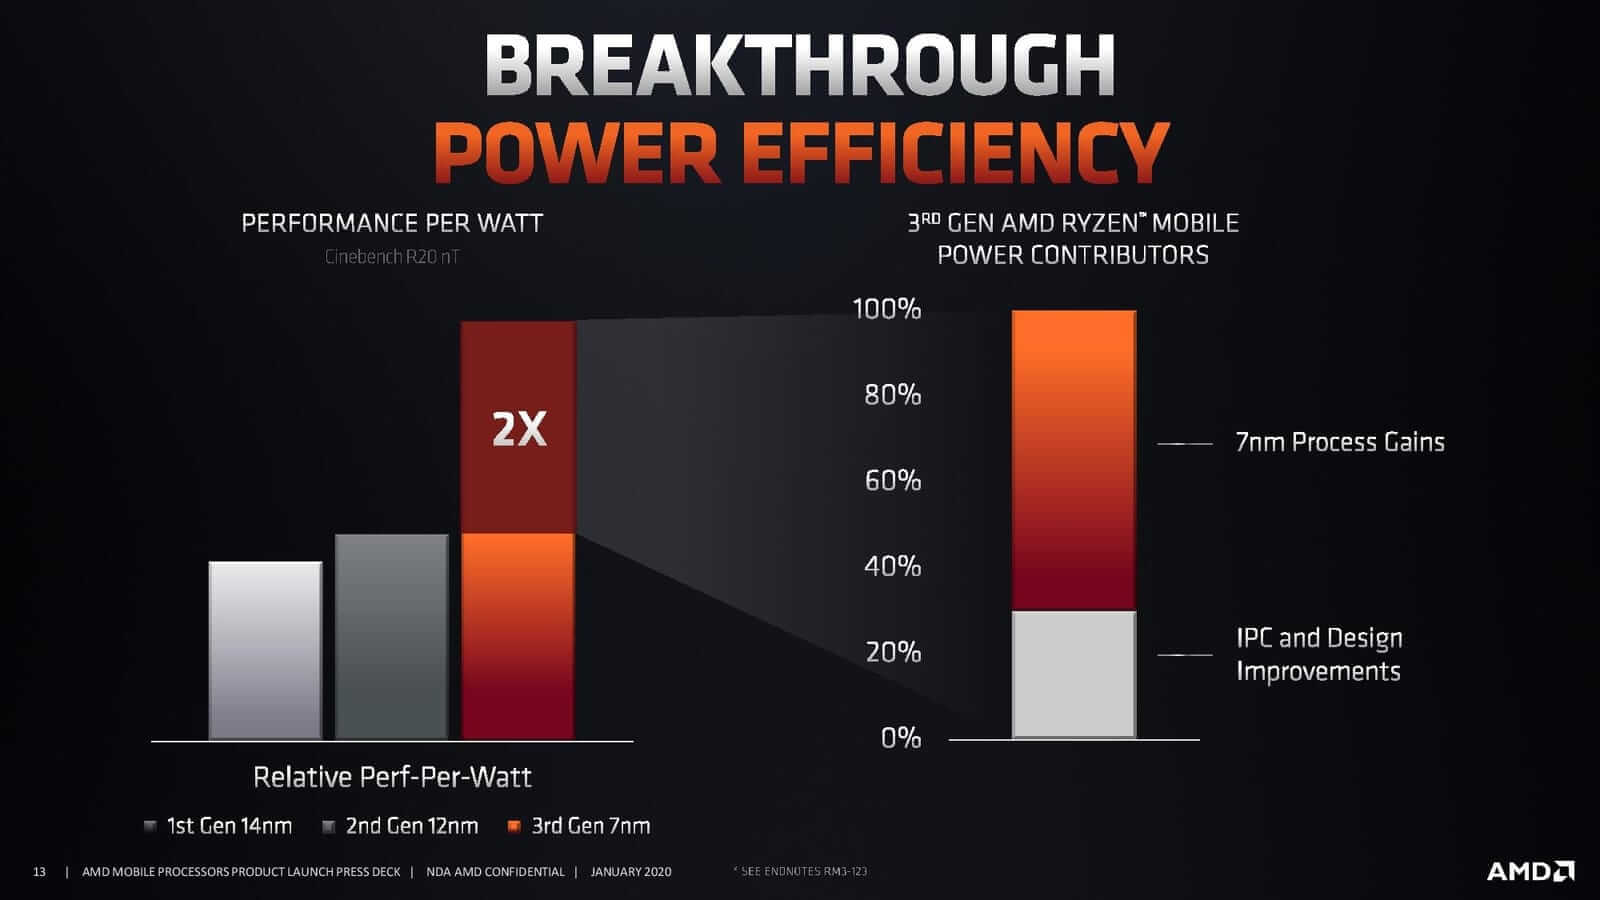 How AMD achieved 2x Performance Per Watt